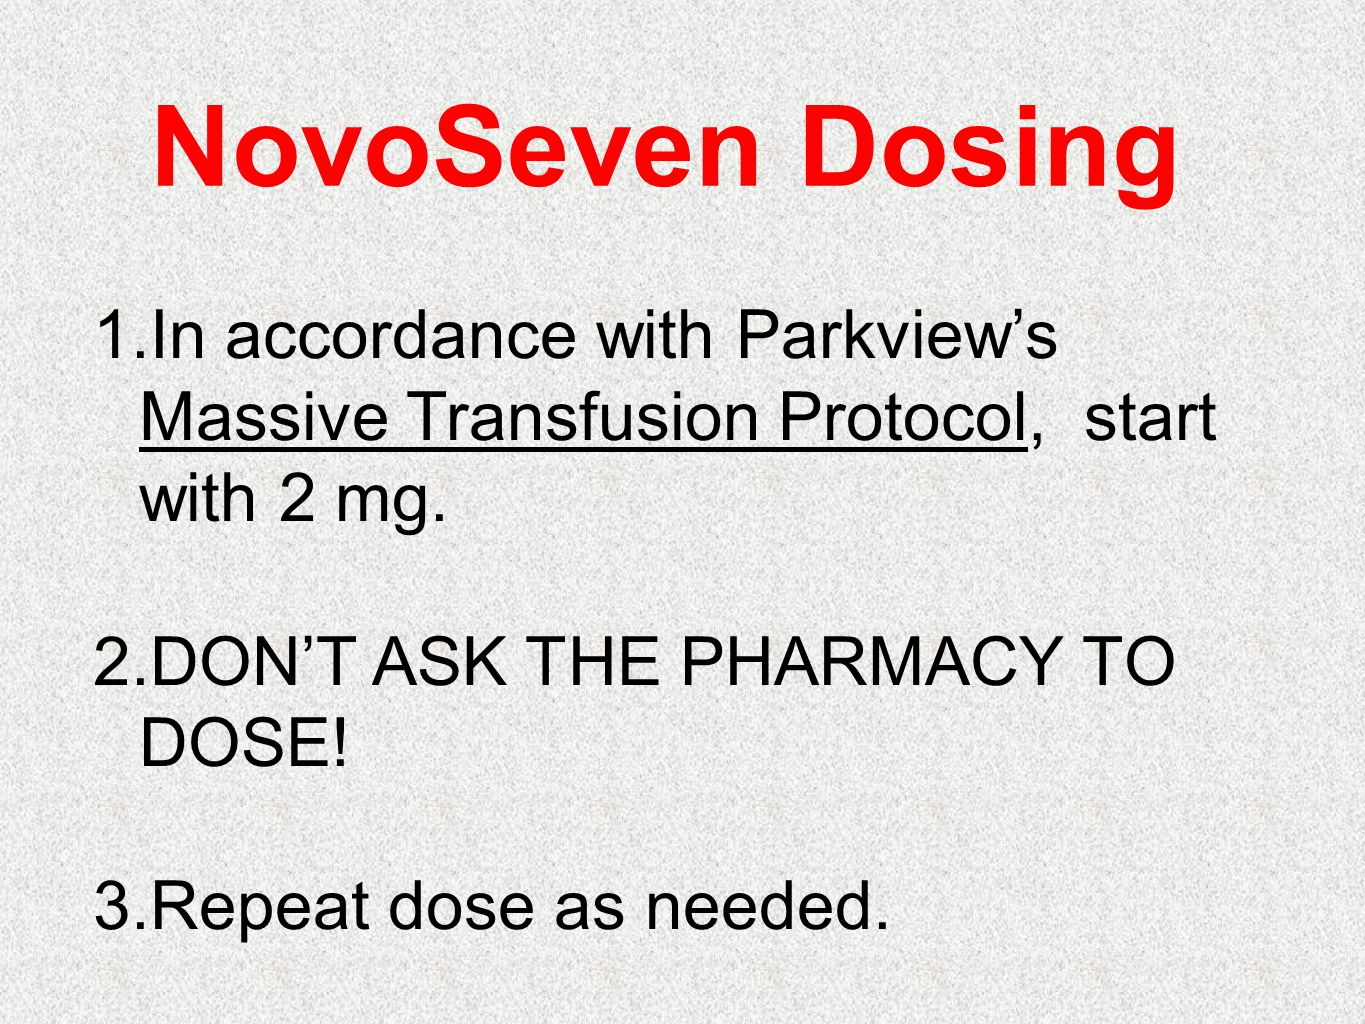 NovoSeven Dosing In accordance with Parkview's Massive Transfusion Protocol, start with 2 mg. DON'T ASK THE PHARMACY TO DOSE!